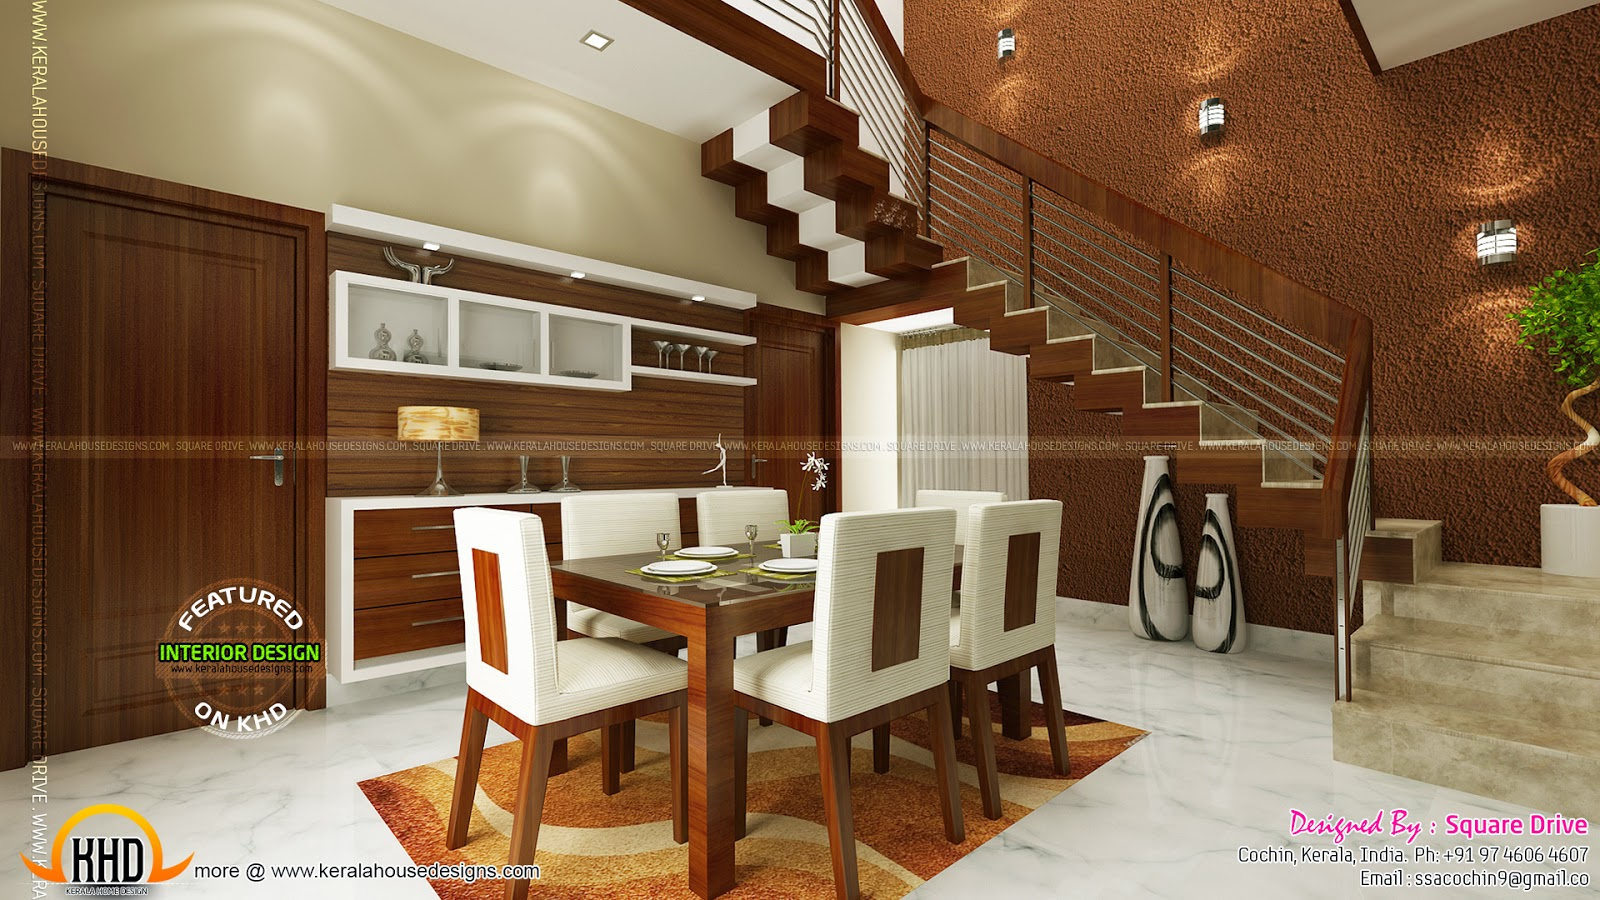 Cochin interior design kerala home design and floor plans Interior house plans